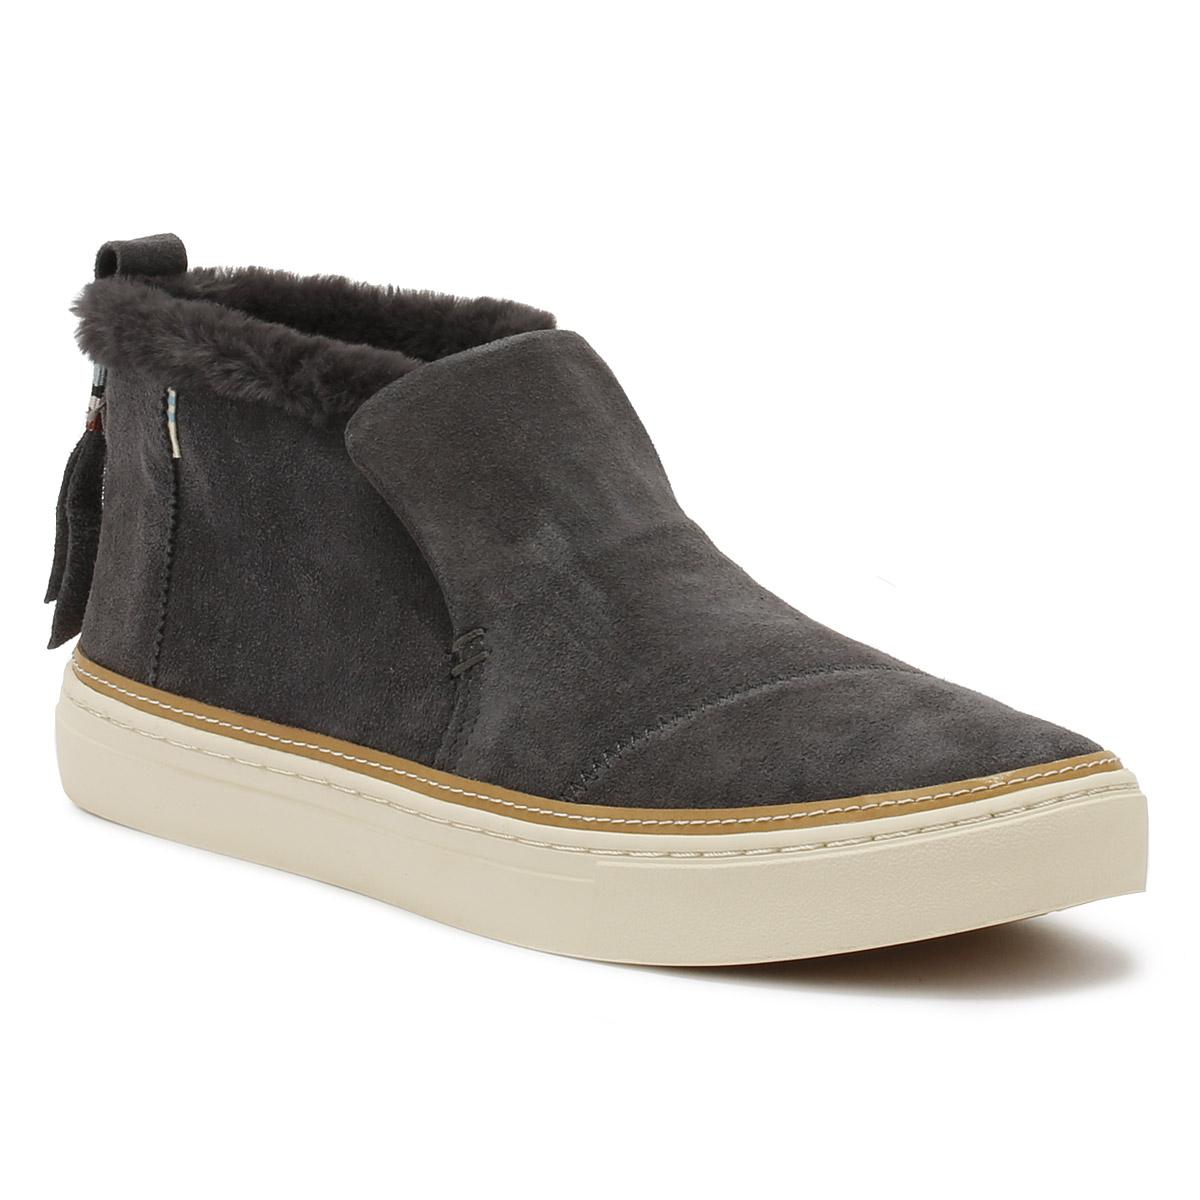 afe0b10f8ee TOMS Womens Grey Suede Paxton Shoes in Gray - Save 31% - Lyst